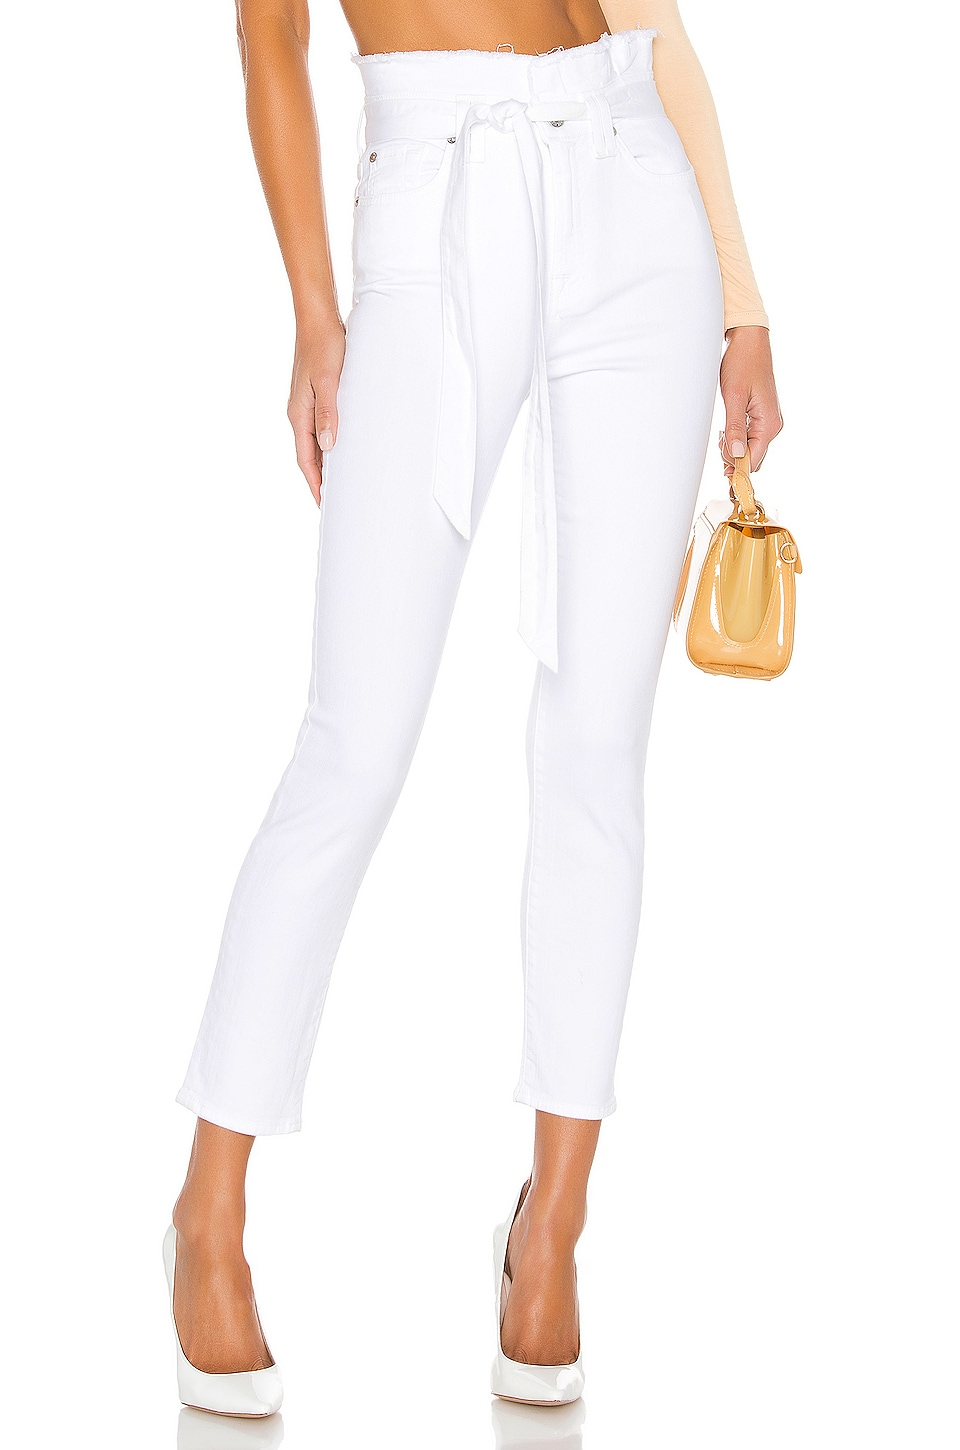 7 For All Mankind Paperbag Waist Pant in White Runaway